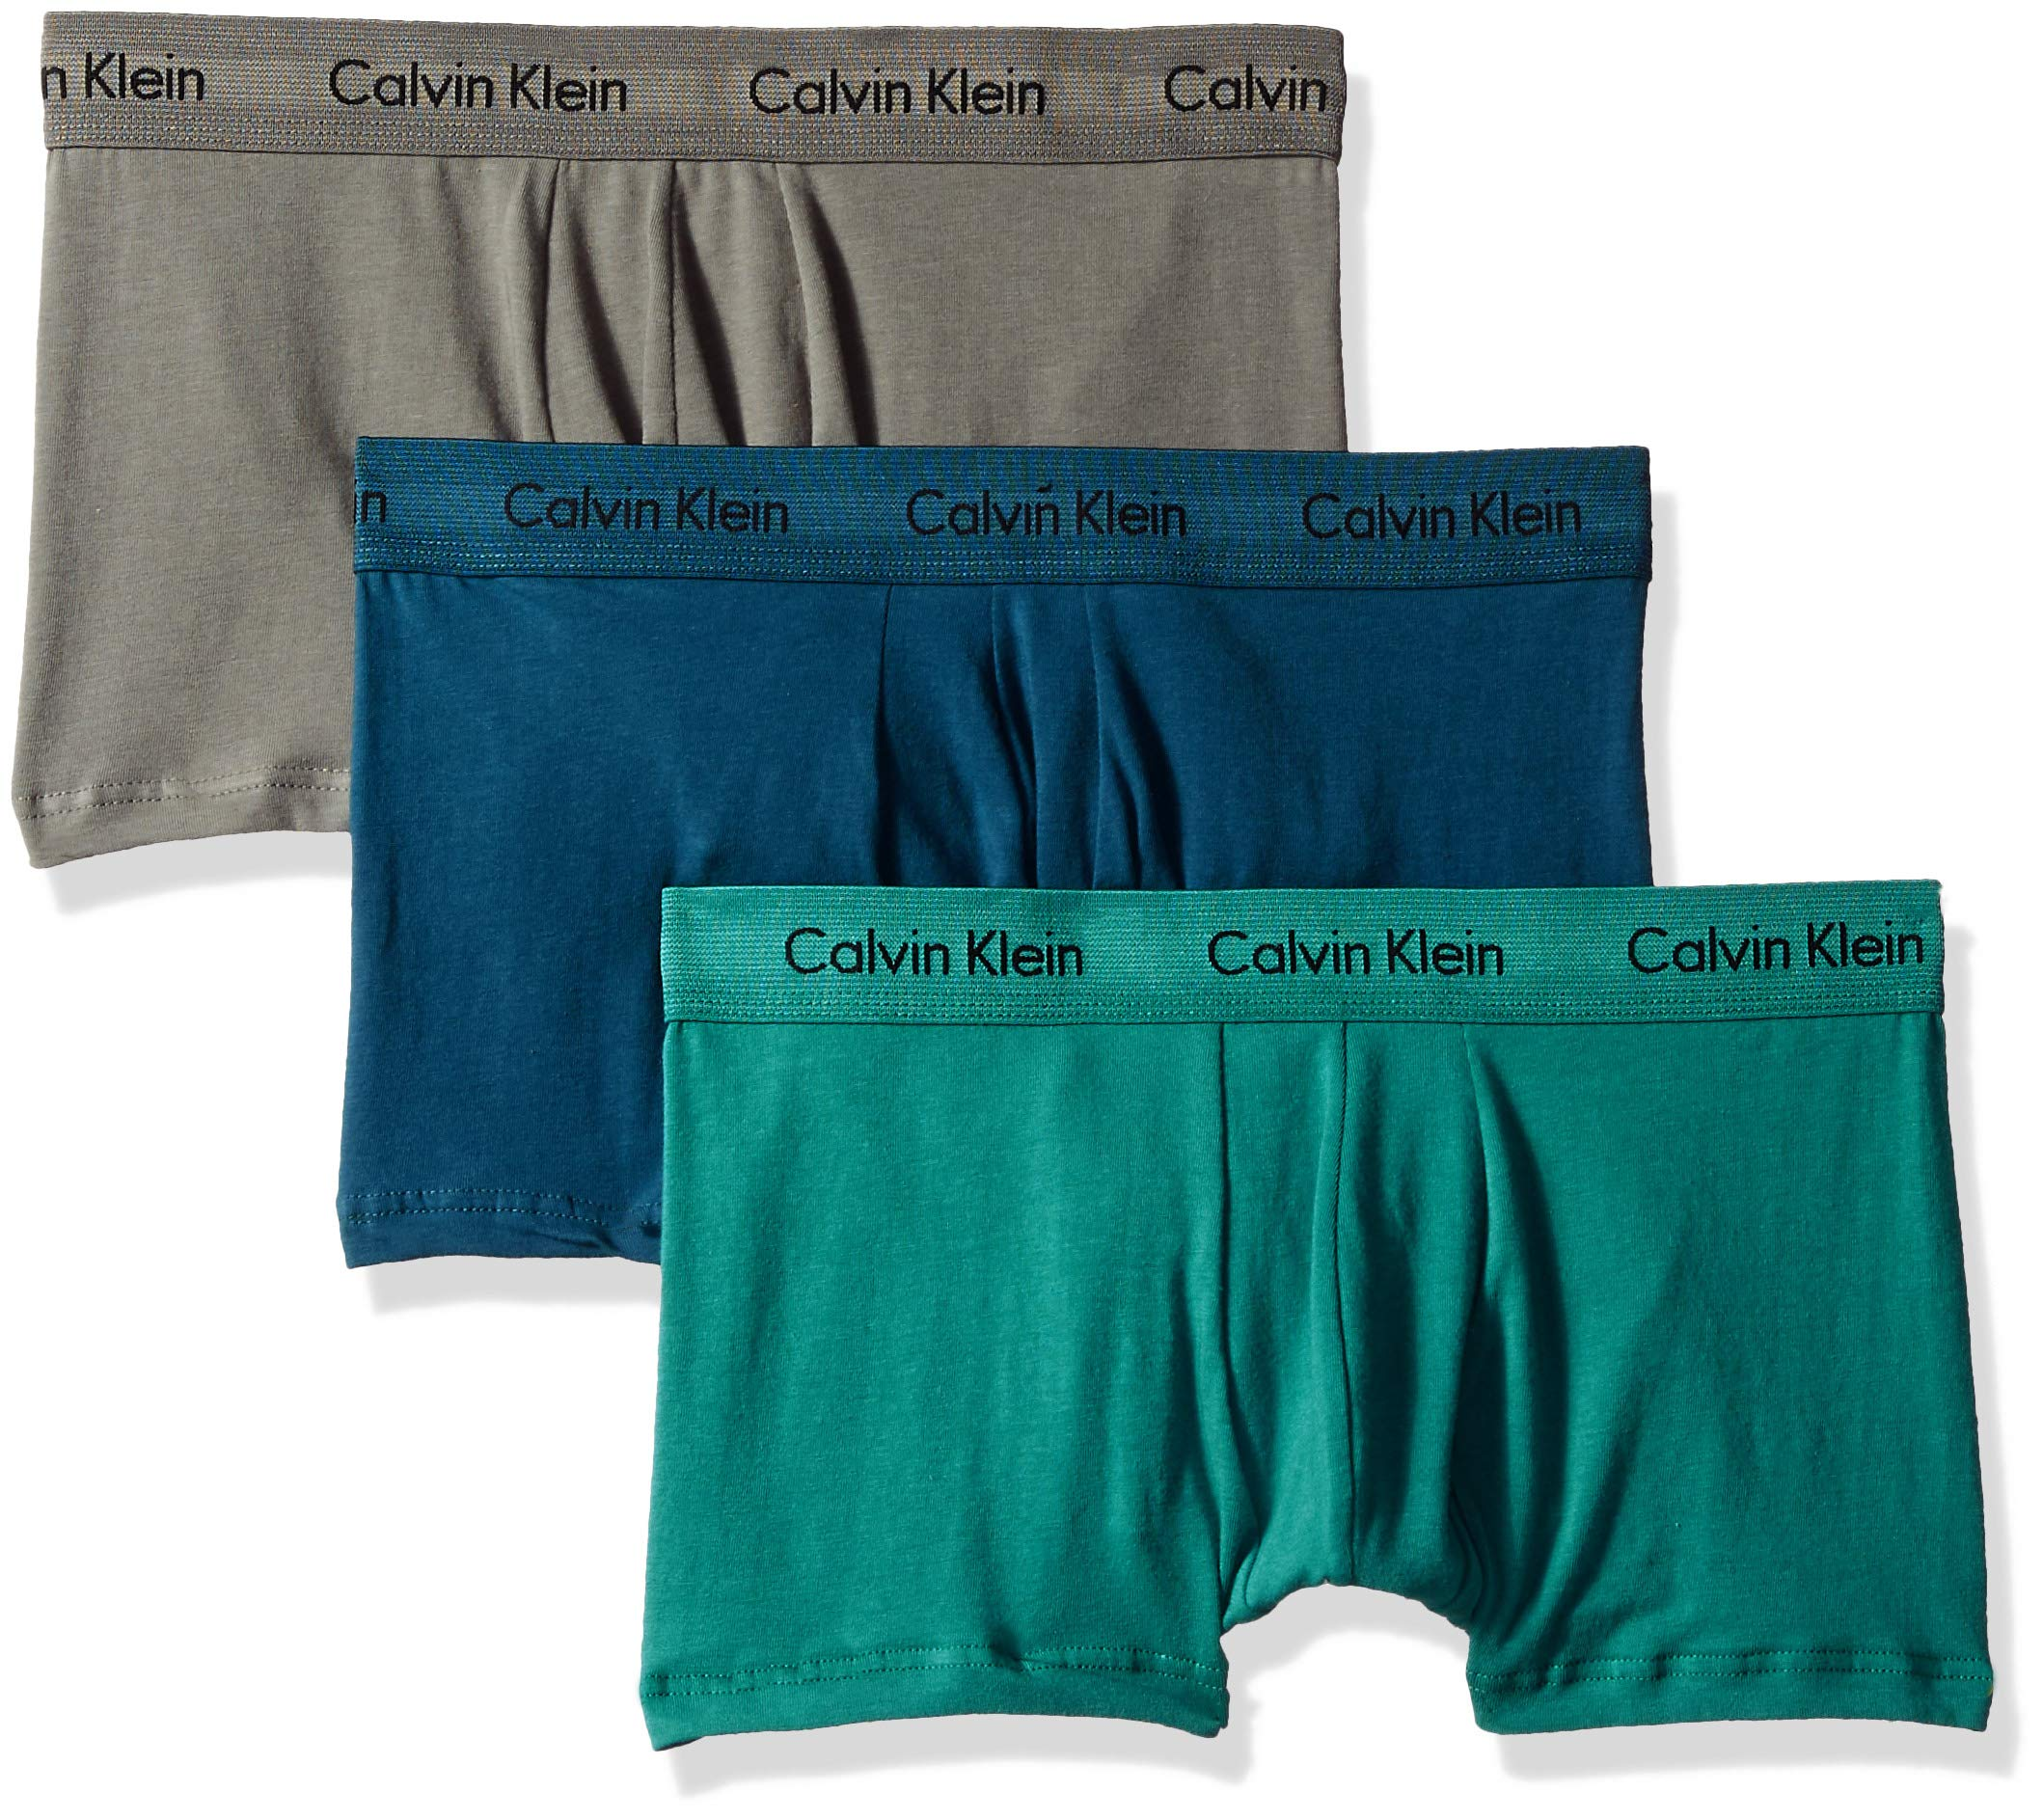 Calvin Klein Men's Cotton Stretch 3 Pack Low Rise Trunks, Grey Sky/majollca/Raleigh, S